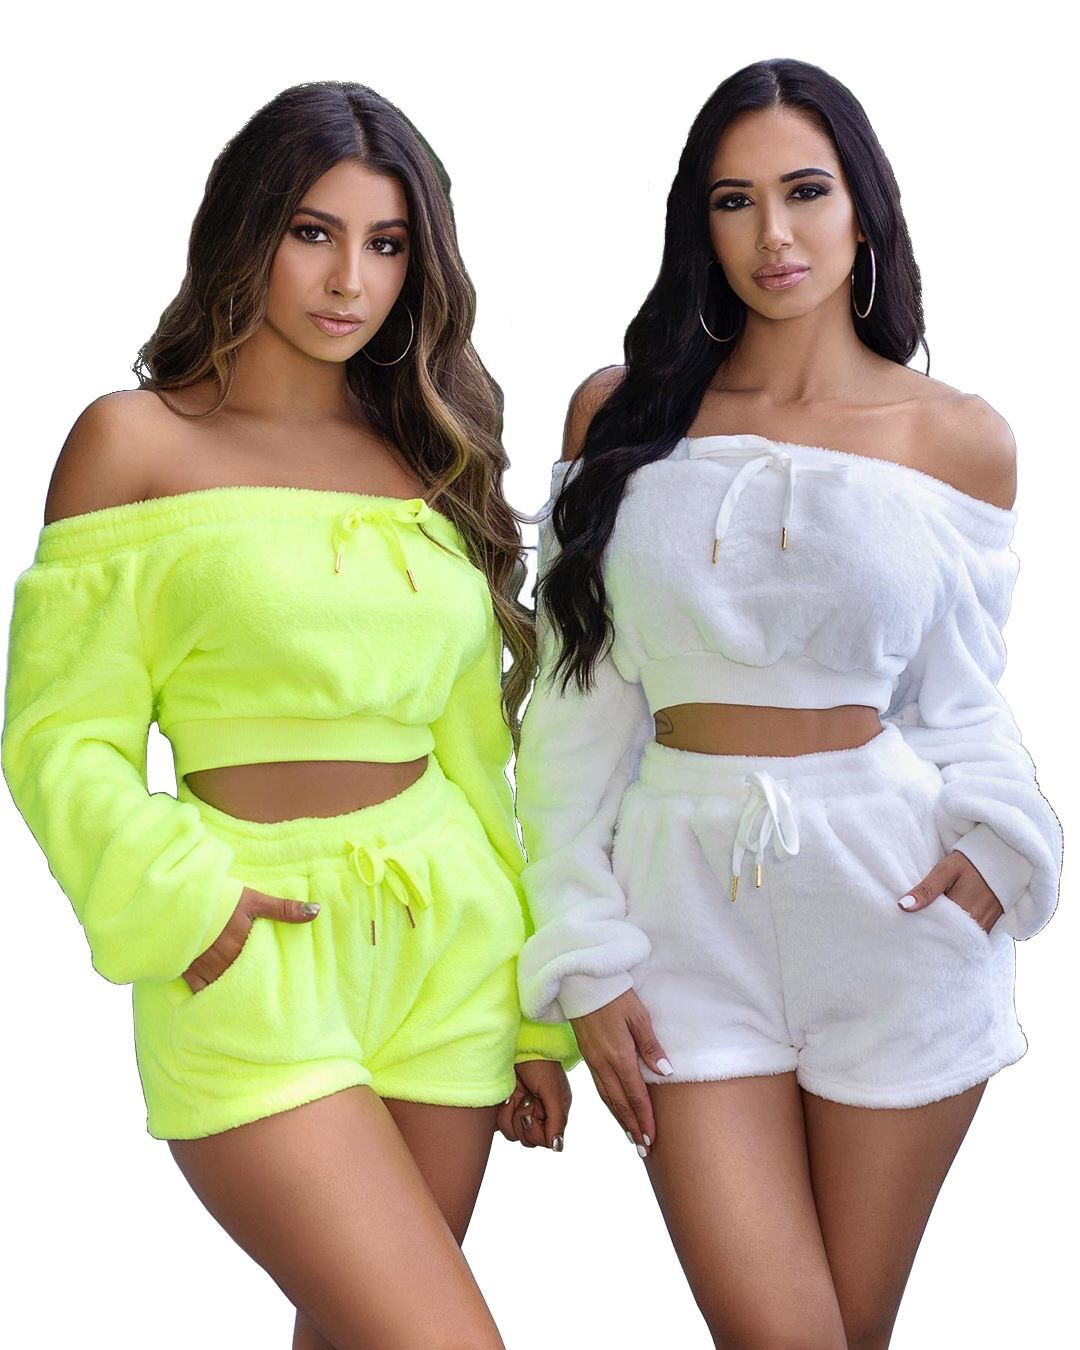 Neon Two Piece Set Women Velvet Tracksuits Festival Clothing Crop Top Shorts Sexy Club Outfits Fall Velour Matching Sets